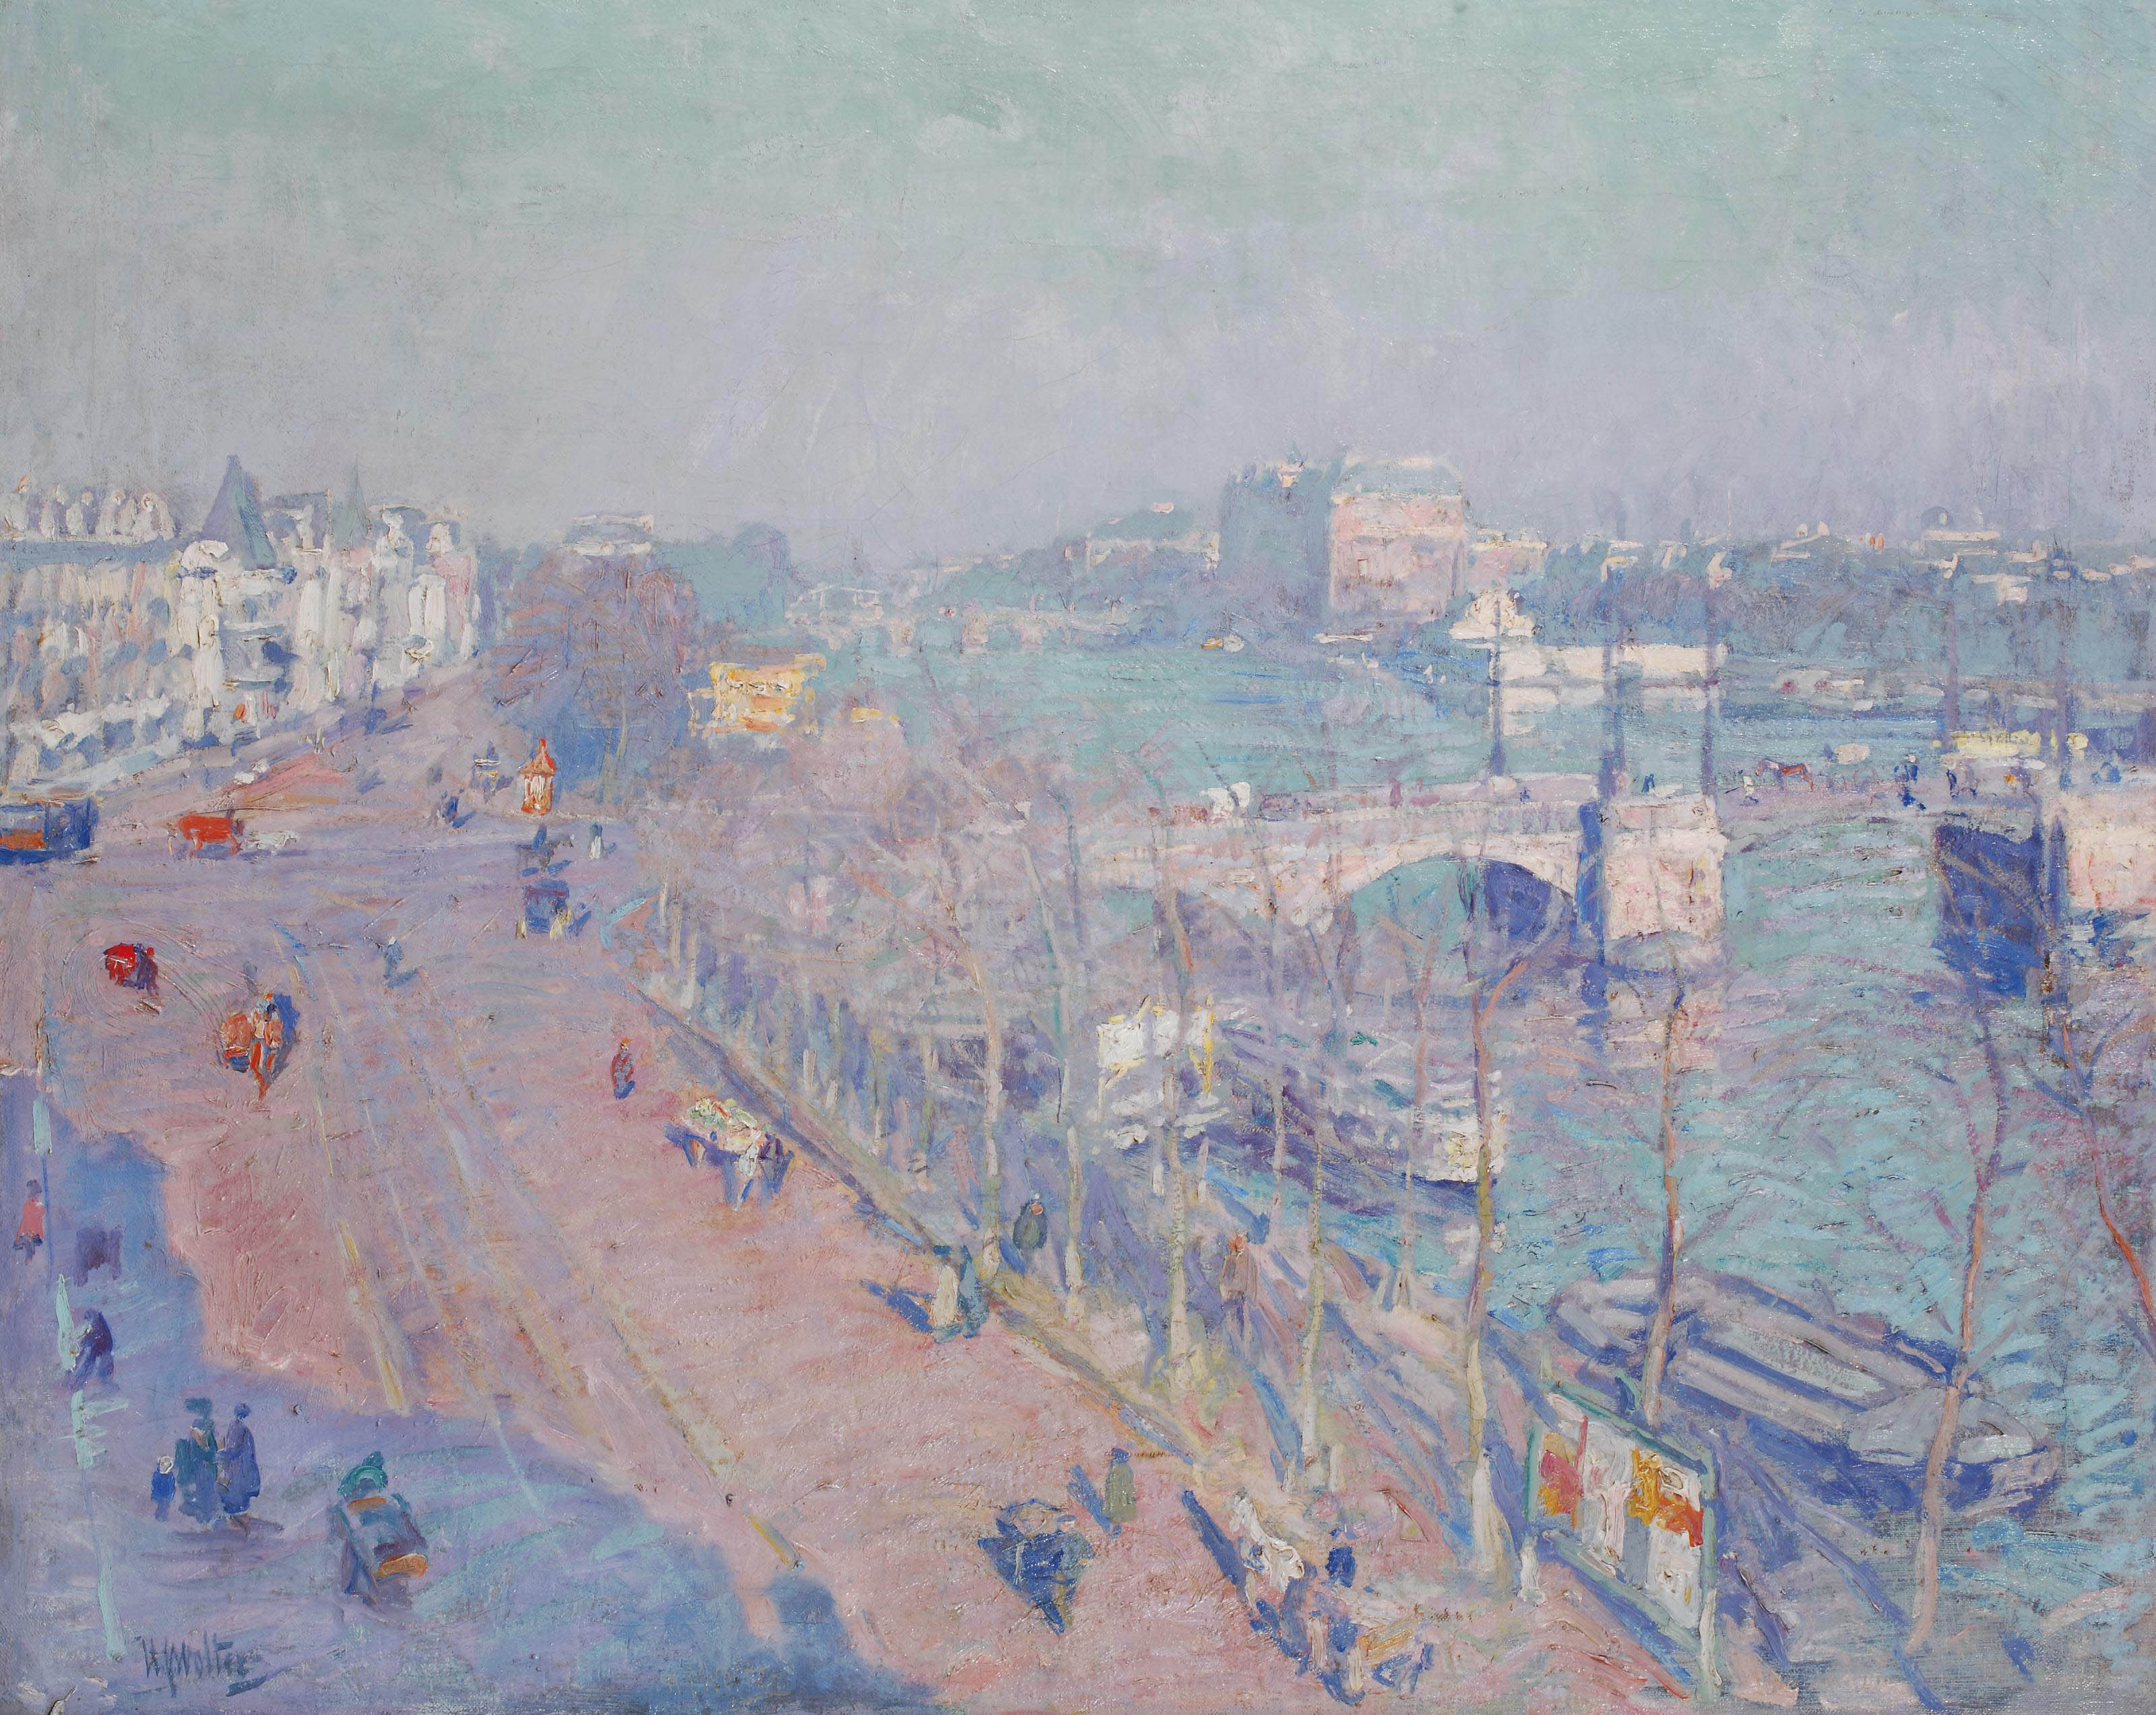 Early morning at the river Amstel seen from the artist's studio, Amsterdam